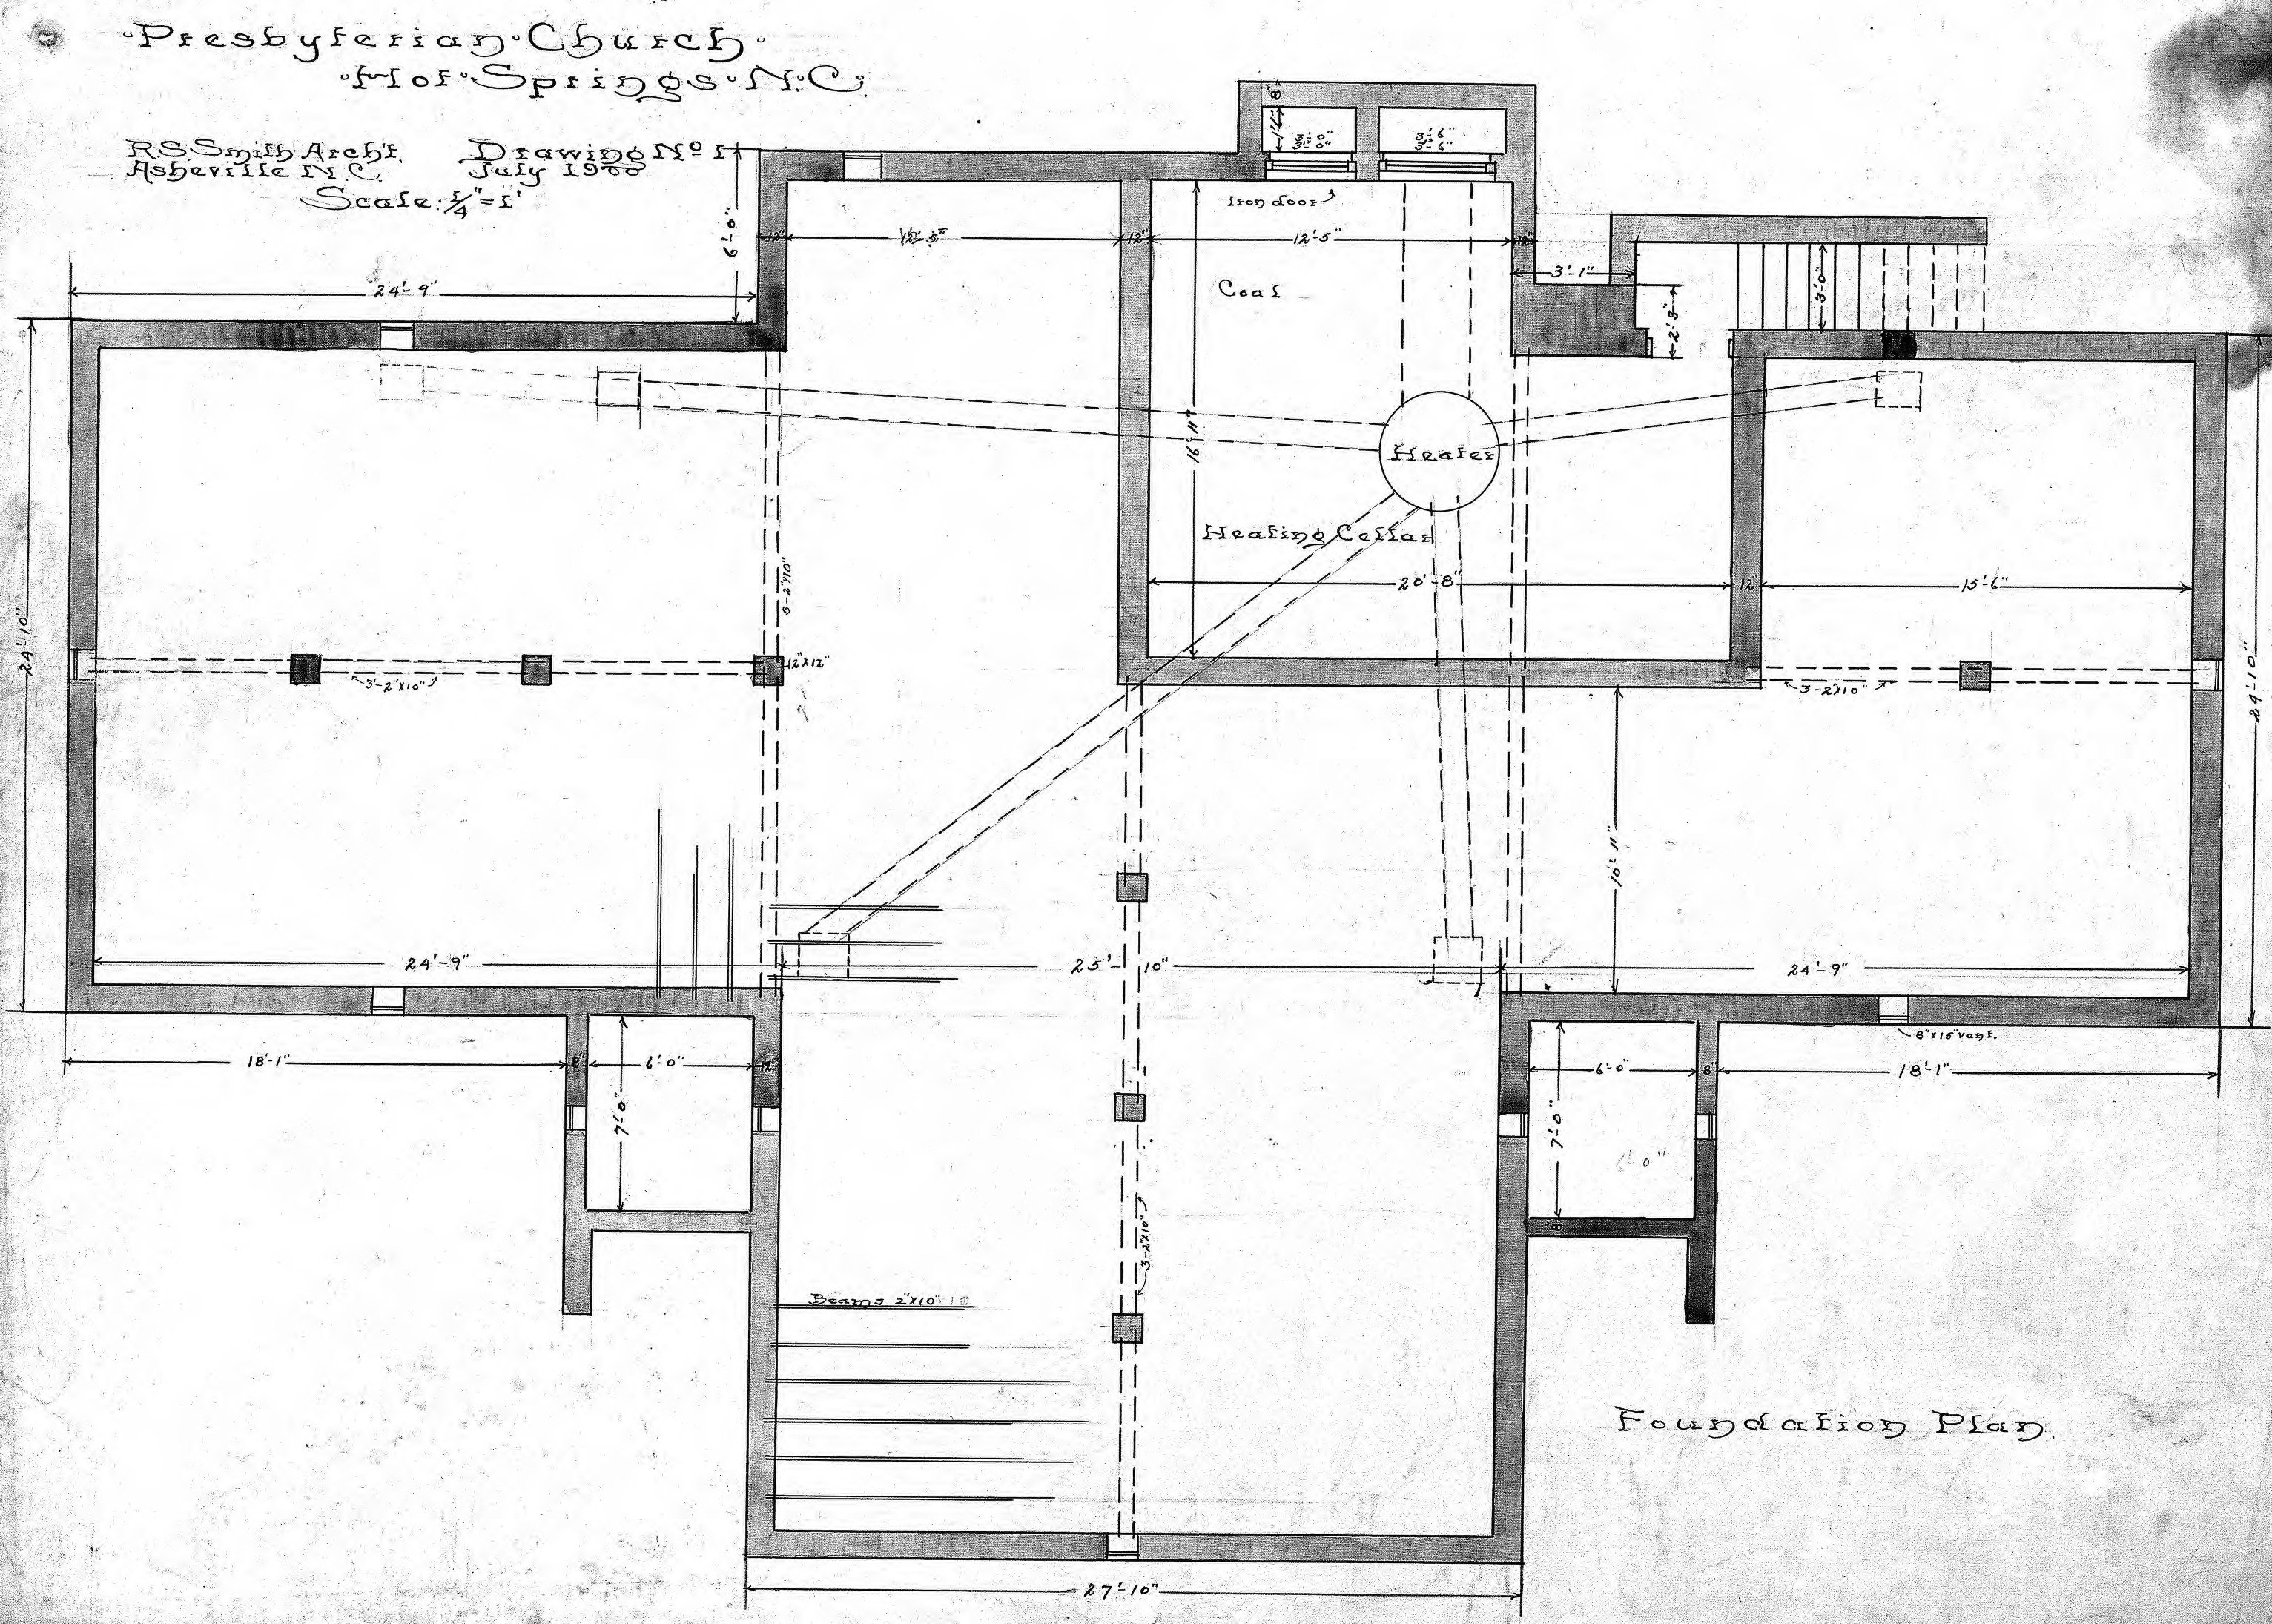 presbyterian church foundation plan drawing no 1